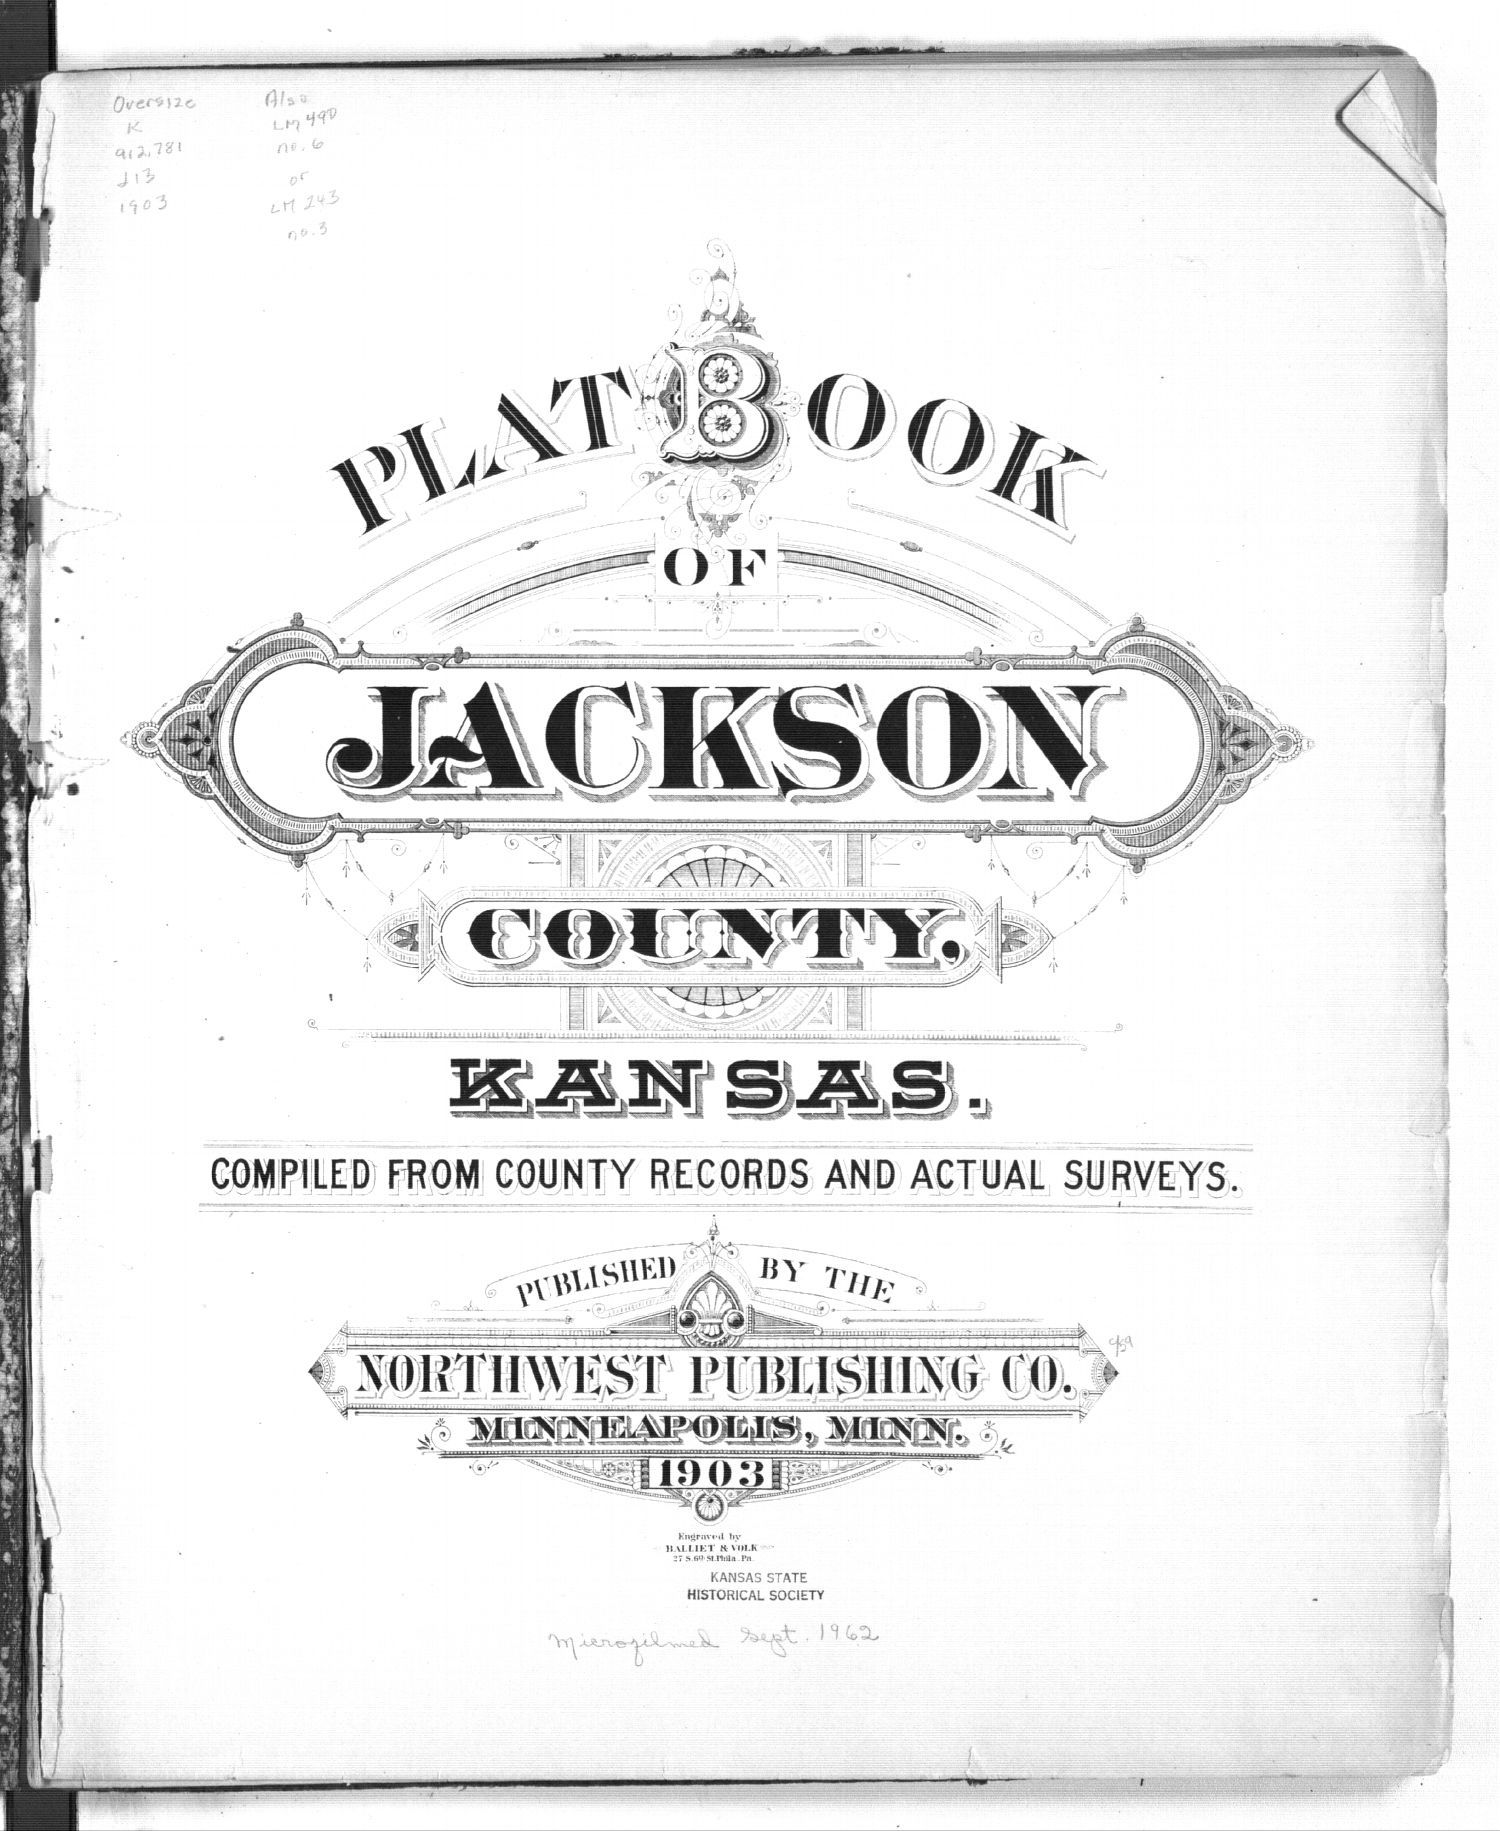 Plat book of Jackson County, Kansas - Title Page